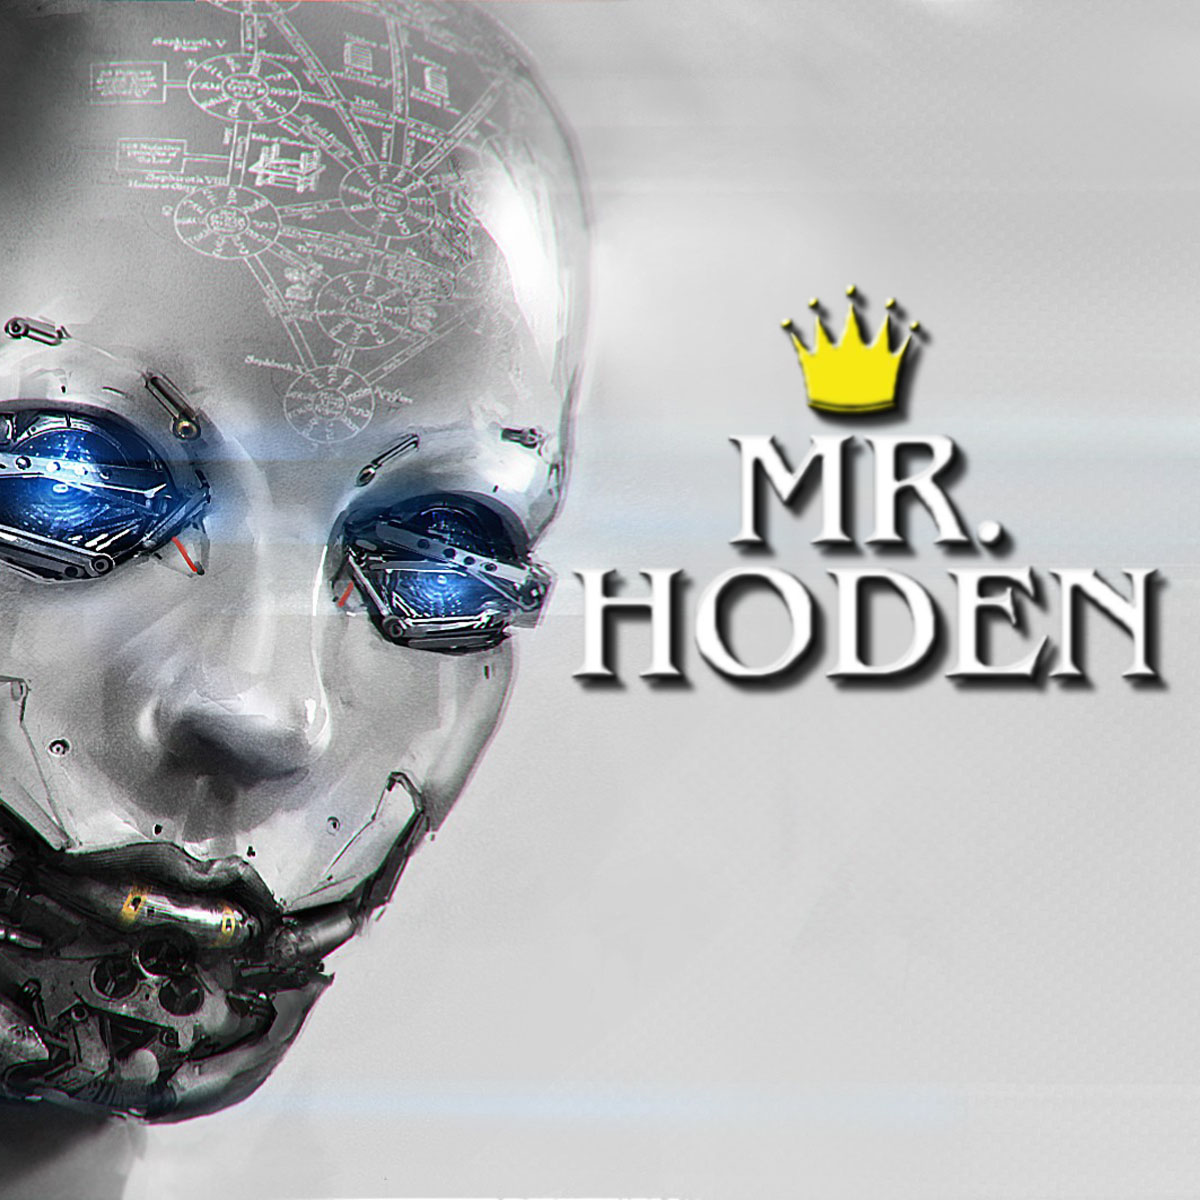 Upcoming: Mr. Hoden - Sick Banger Hip Hop Beat 2018 (Free Beat)